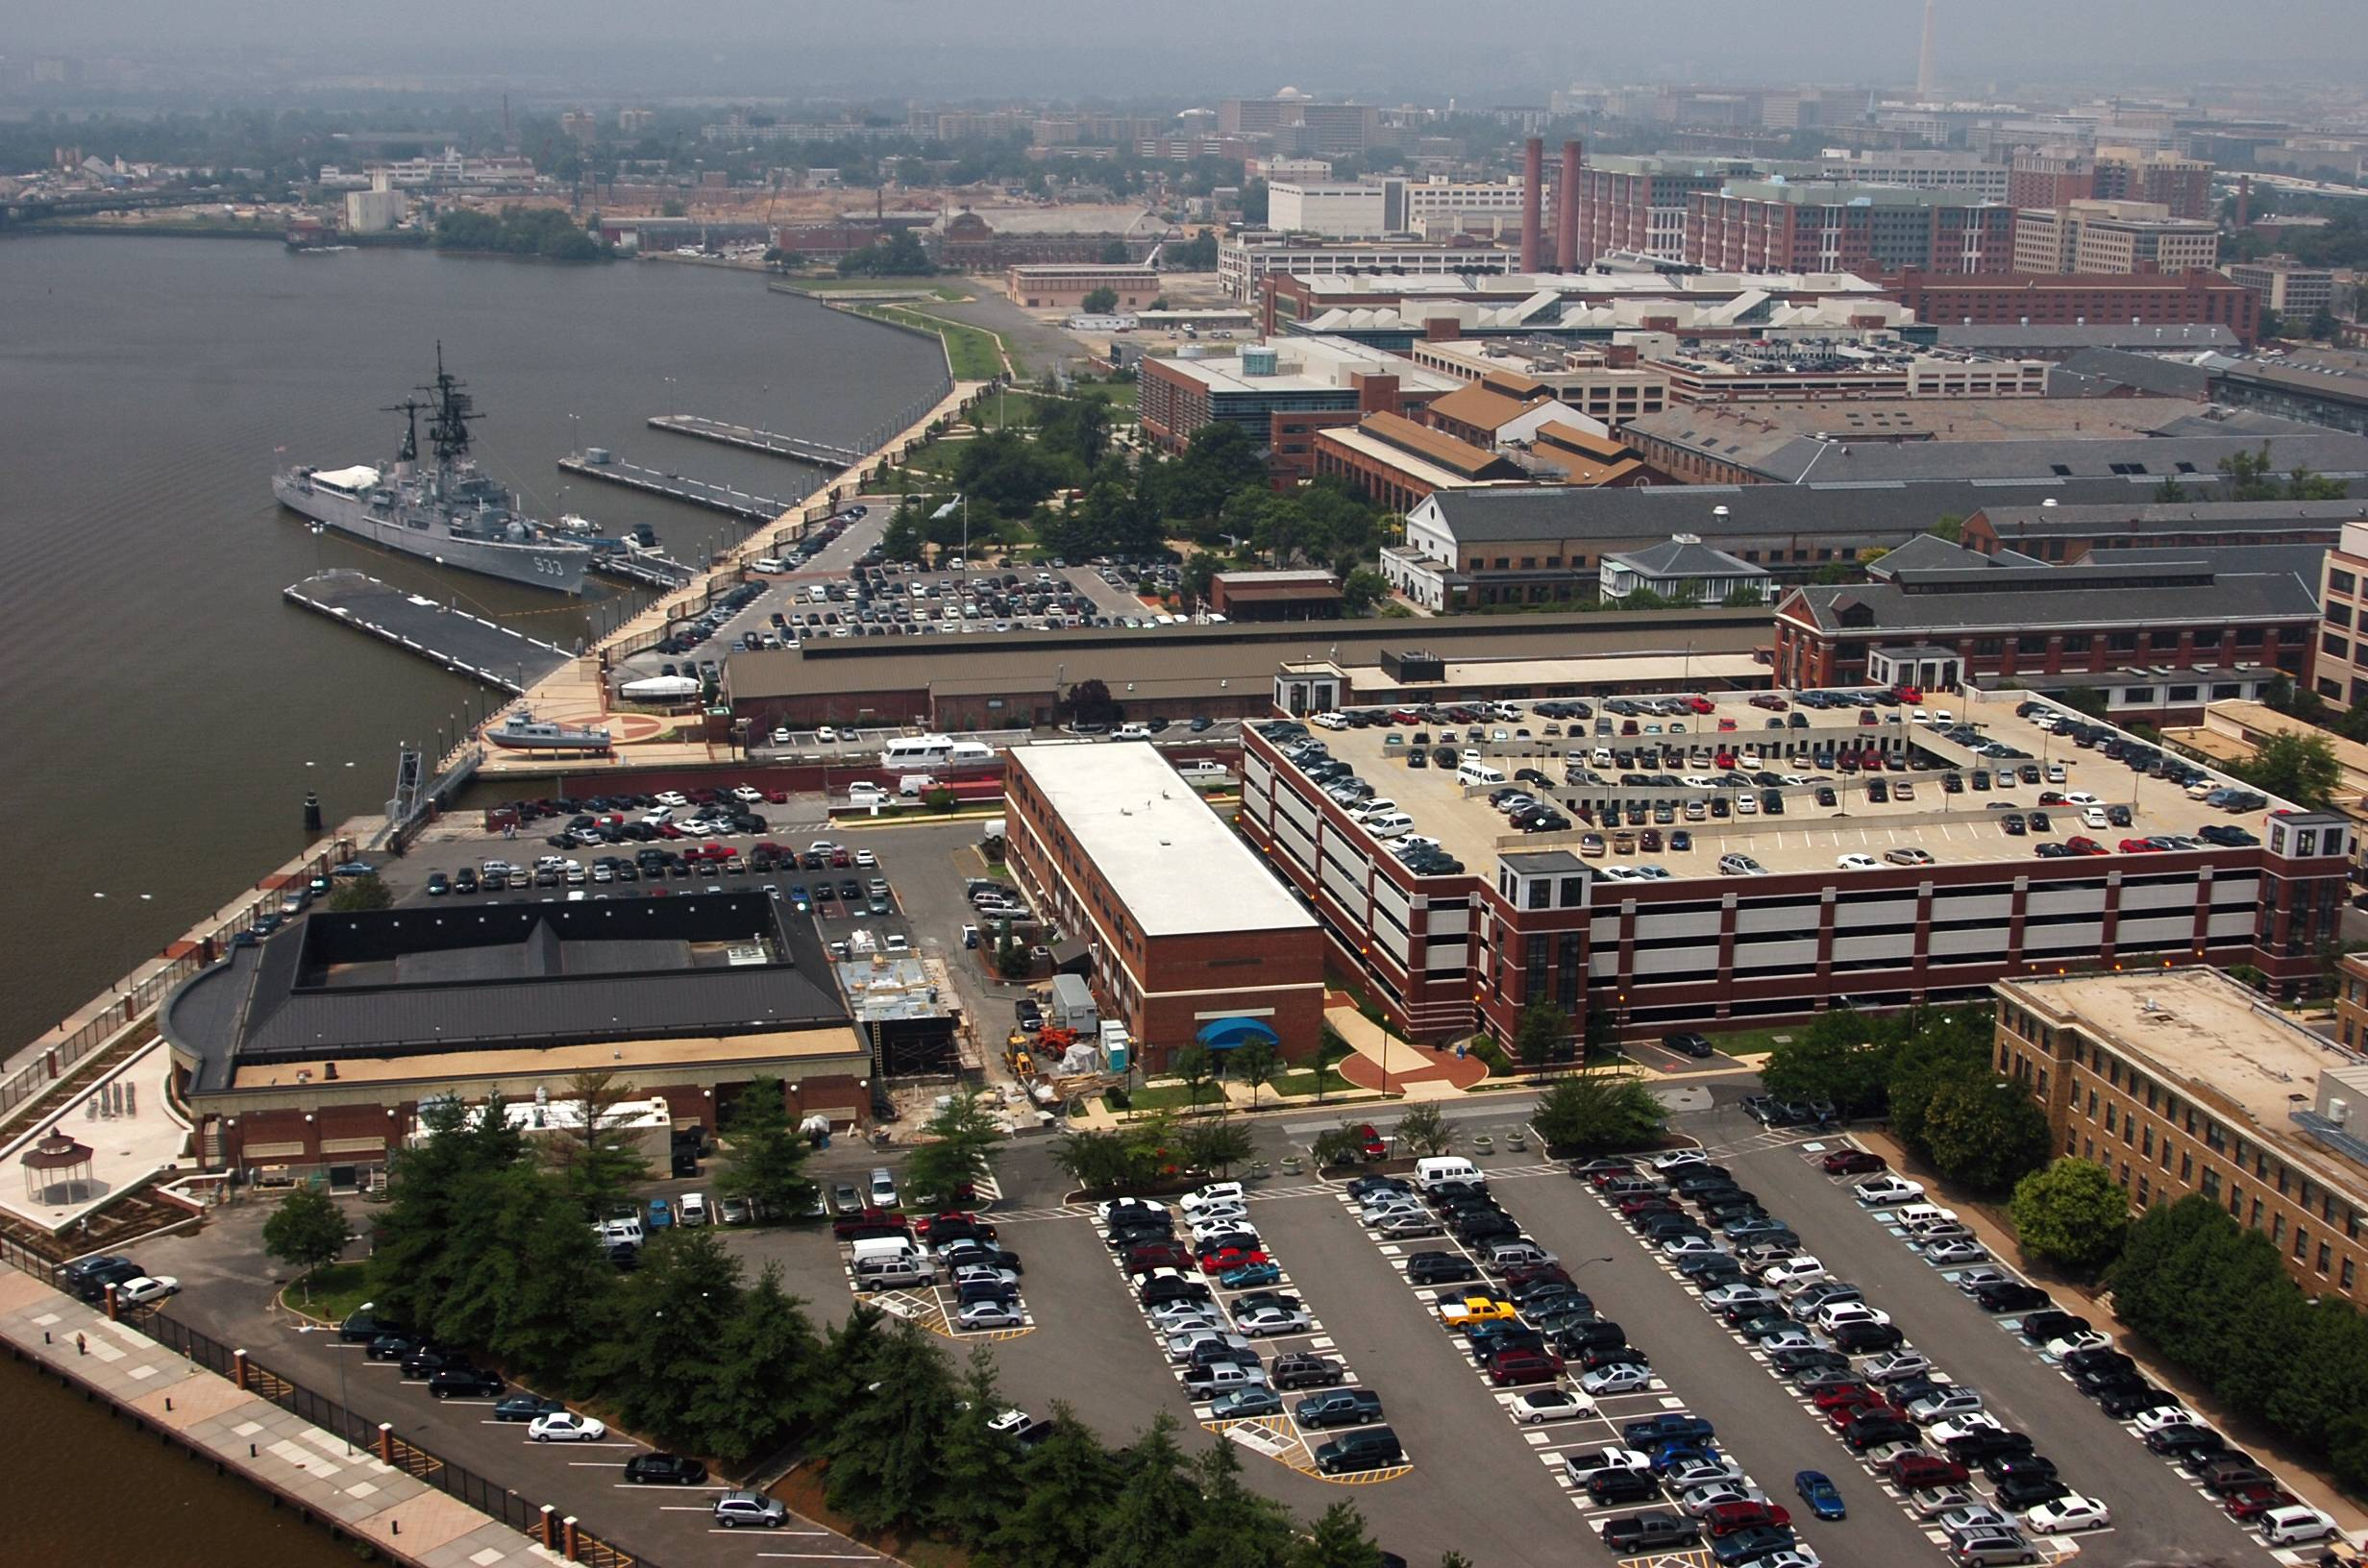 washington navy yard map with Washington Remembers377300 on Nuclear Power also Metro Rush Hour Changes Begin Monday further Mwr Map further 3924842947 furthermore Base Map.